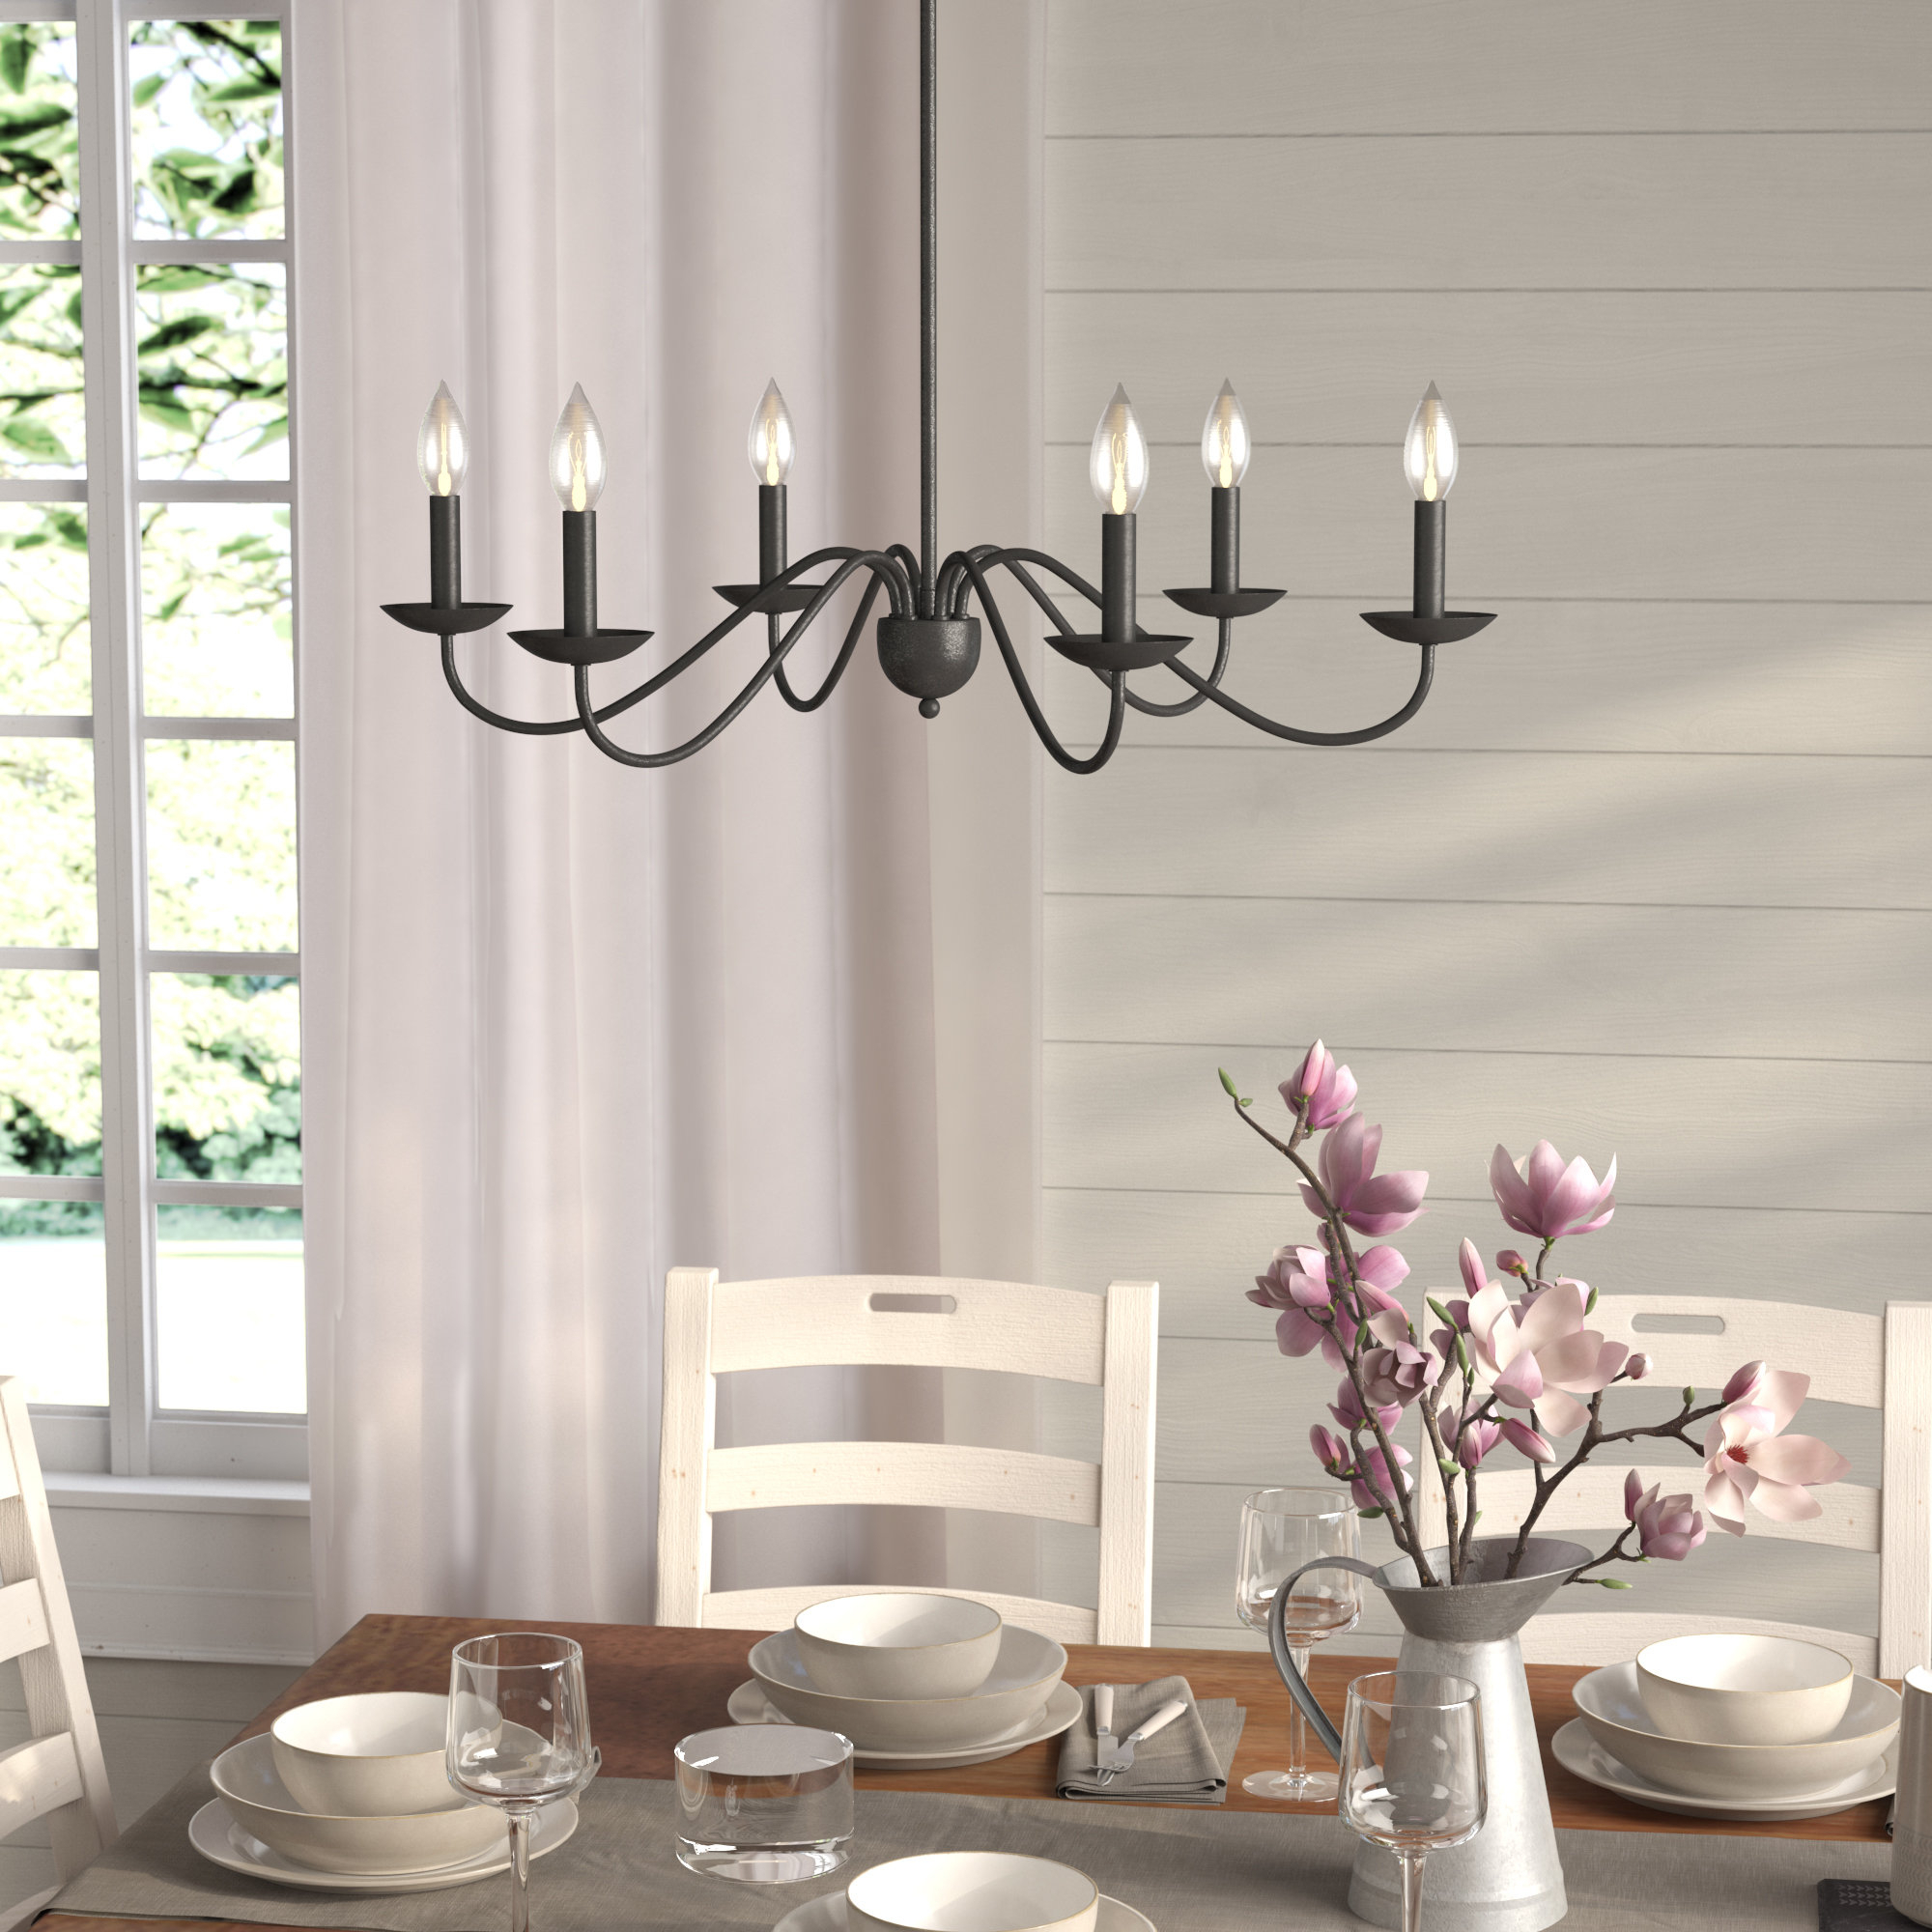 Hamza 6 Light Candle Style Chandeliers Intended For Favorite Perseus 6 Light Candle Style Chandelier (View 3 of 20)